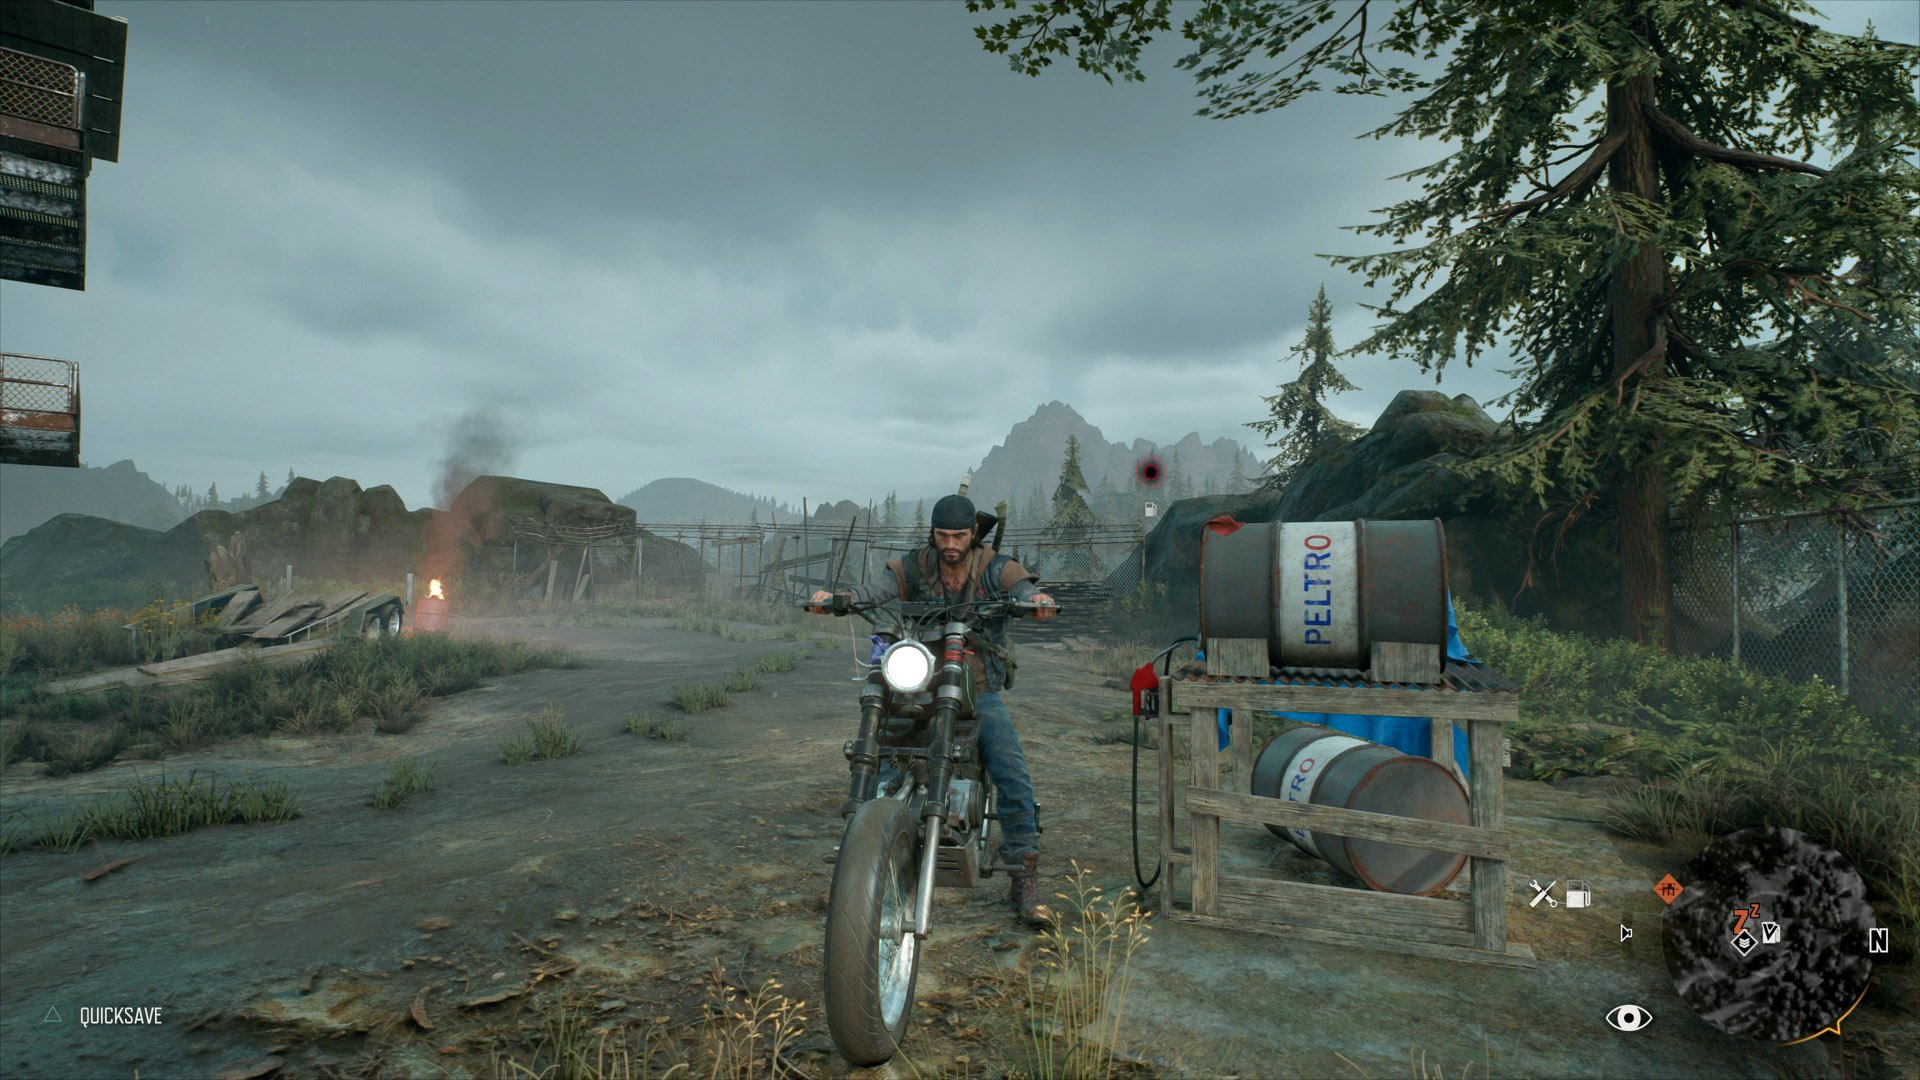 days gone game pc size 2gb live47 作者:ThomasAdeby 帖子ID:129009